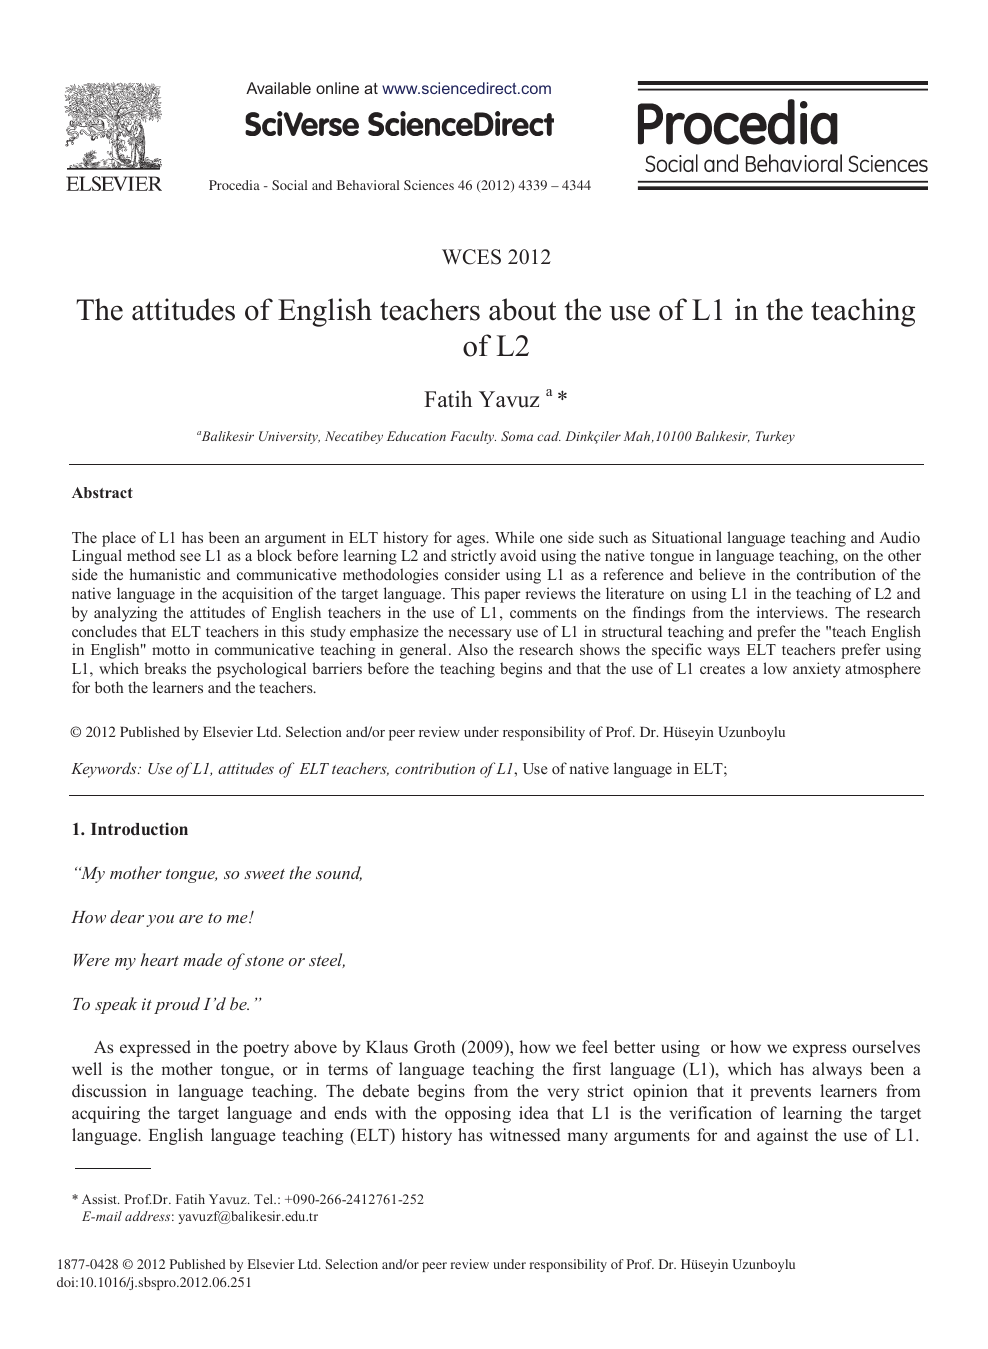 mother tongue research paper